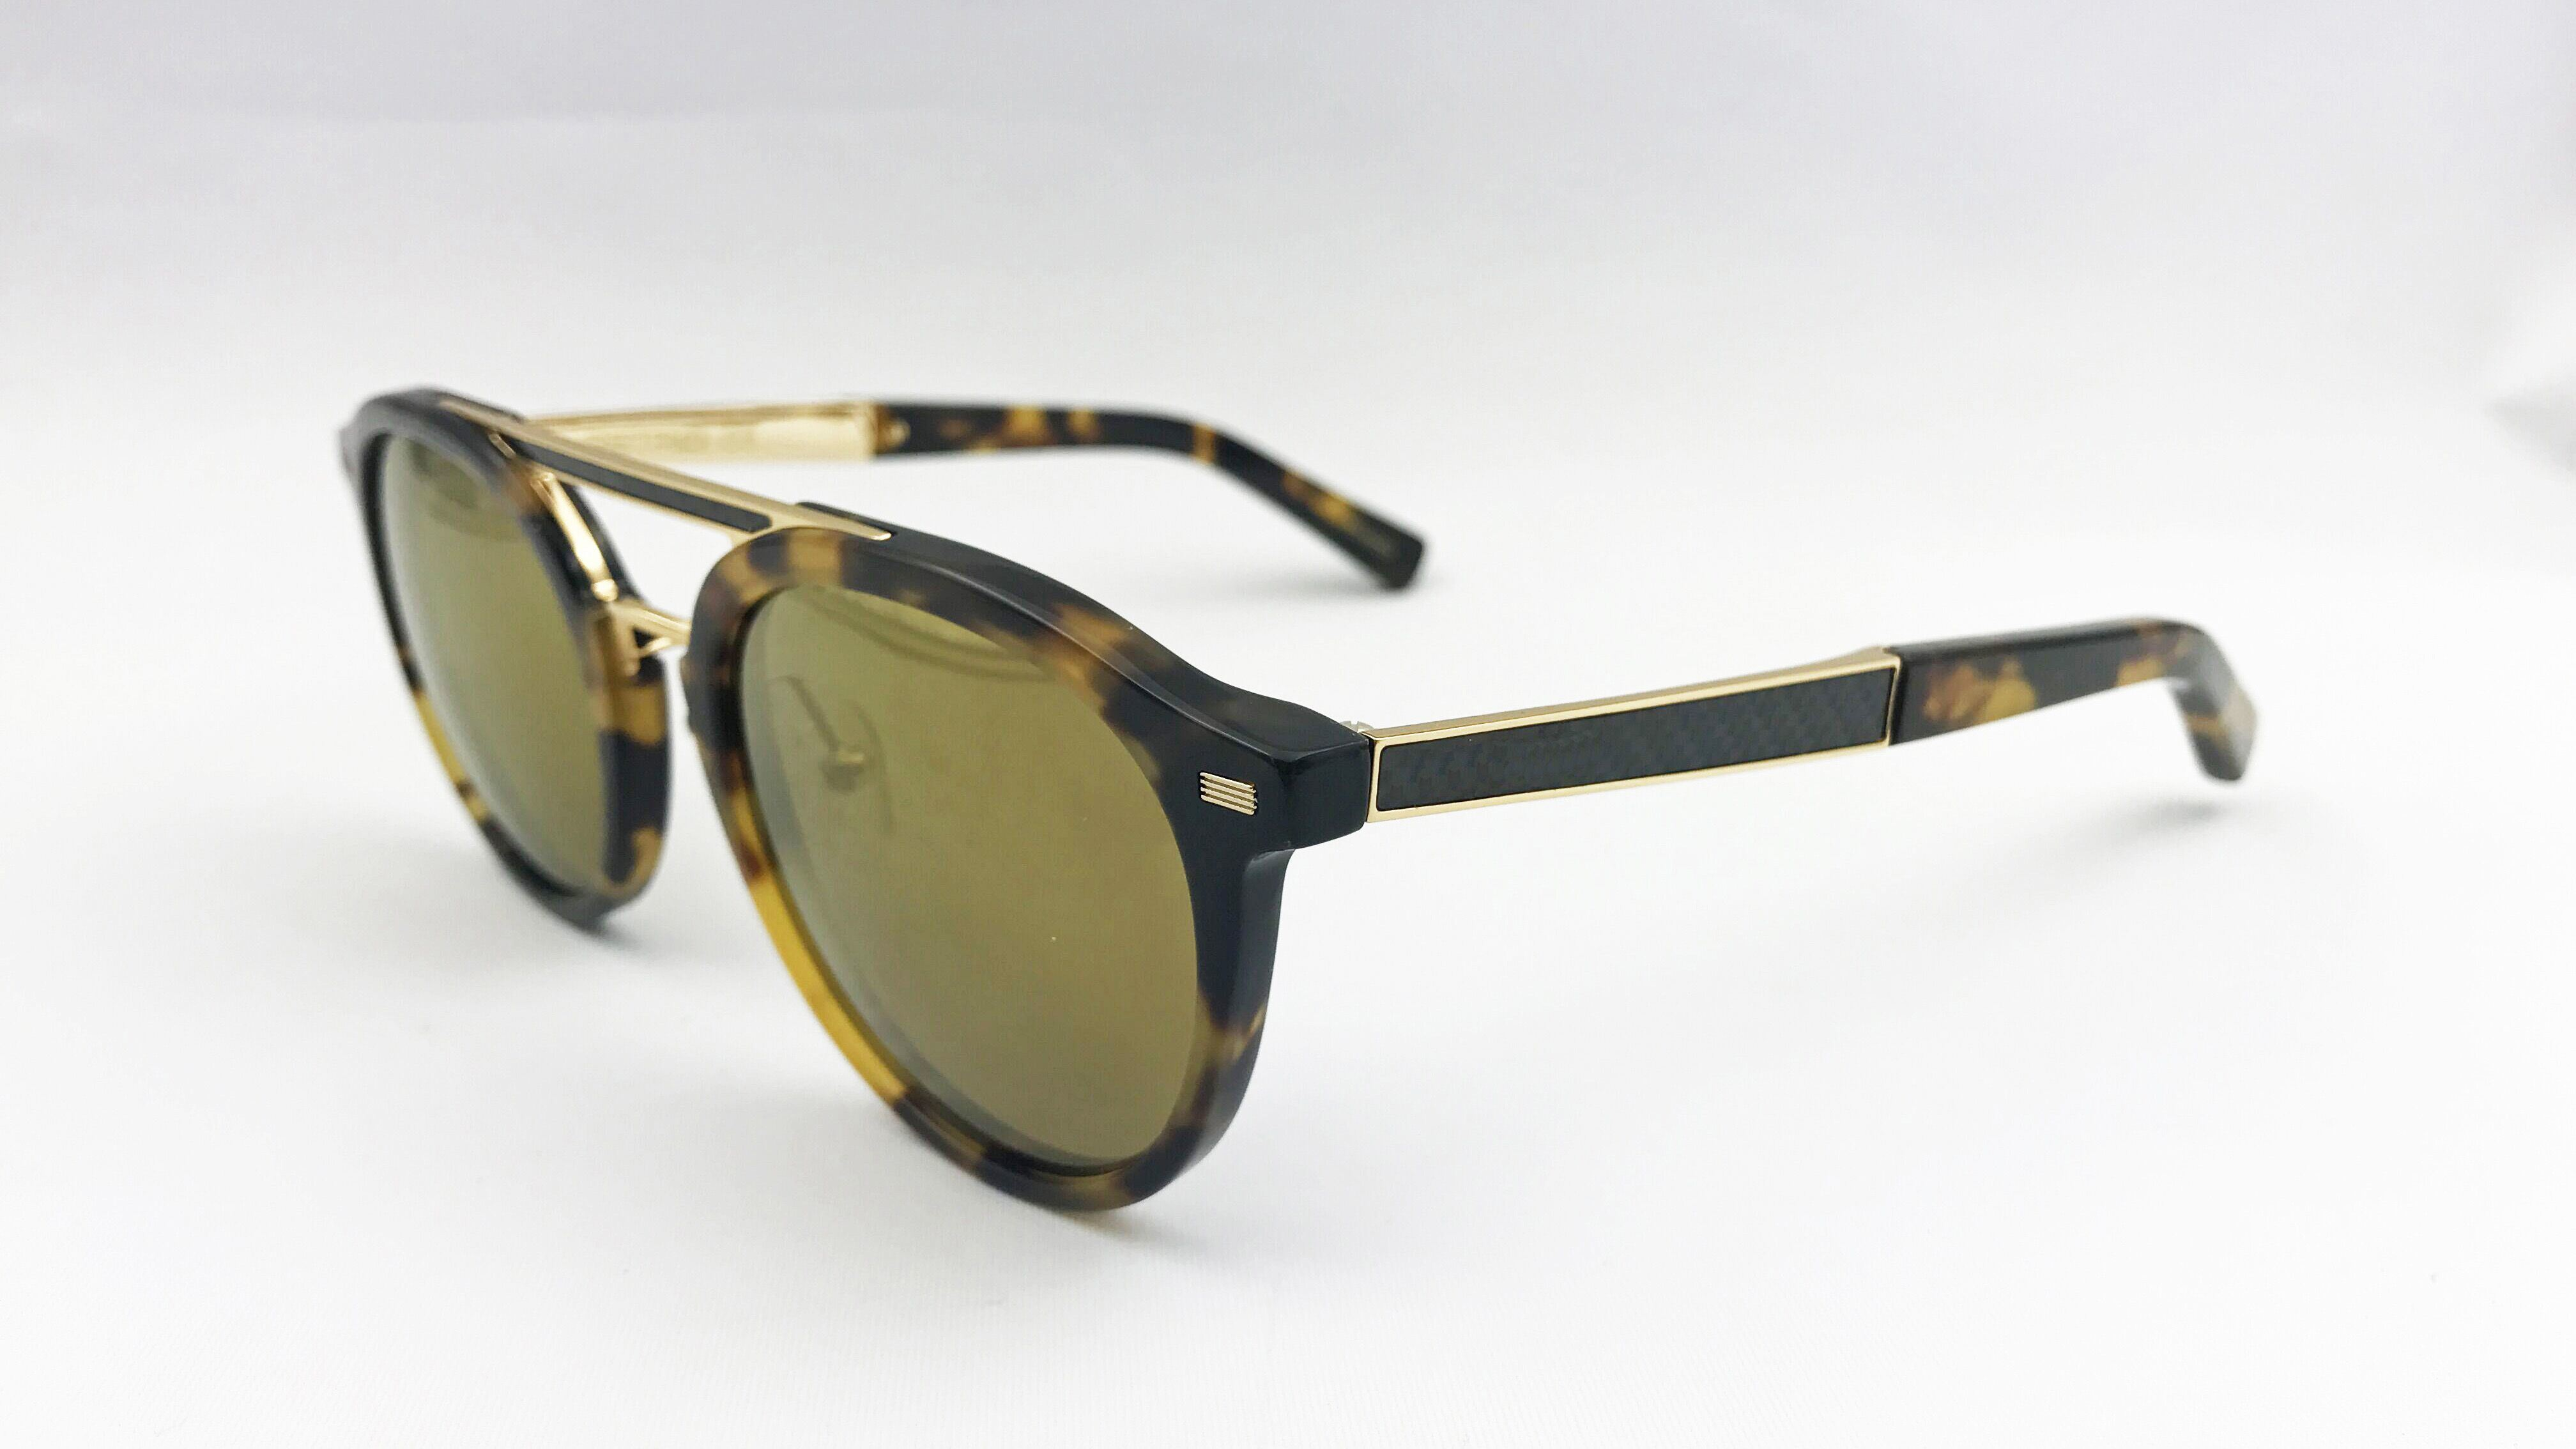 Elegant and Good Selling Sunglasses for Man with Carbon Fibre Decor.